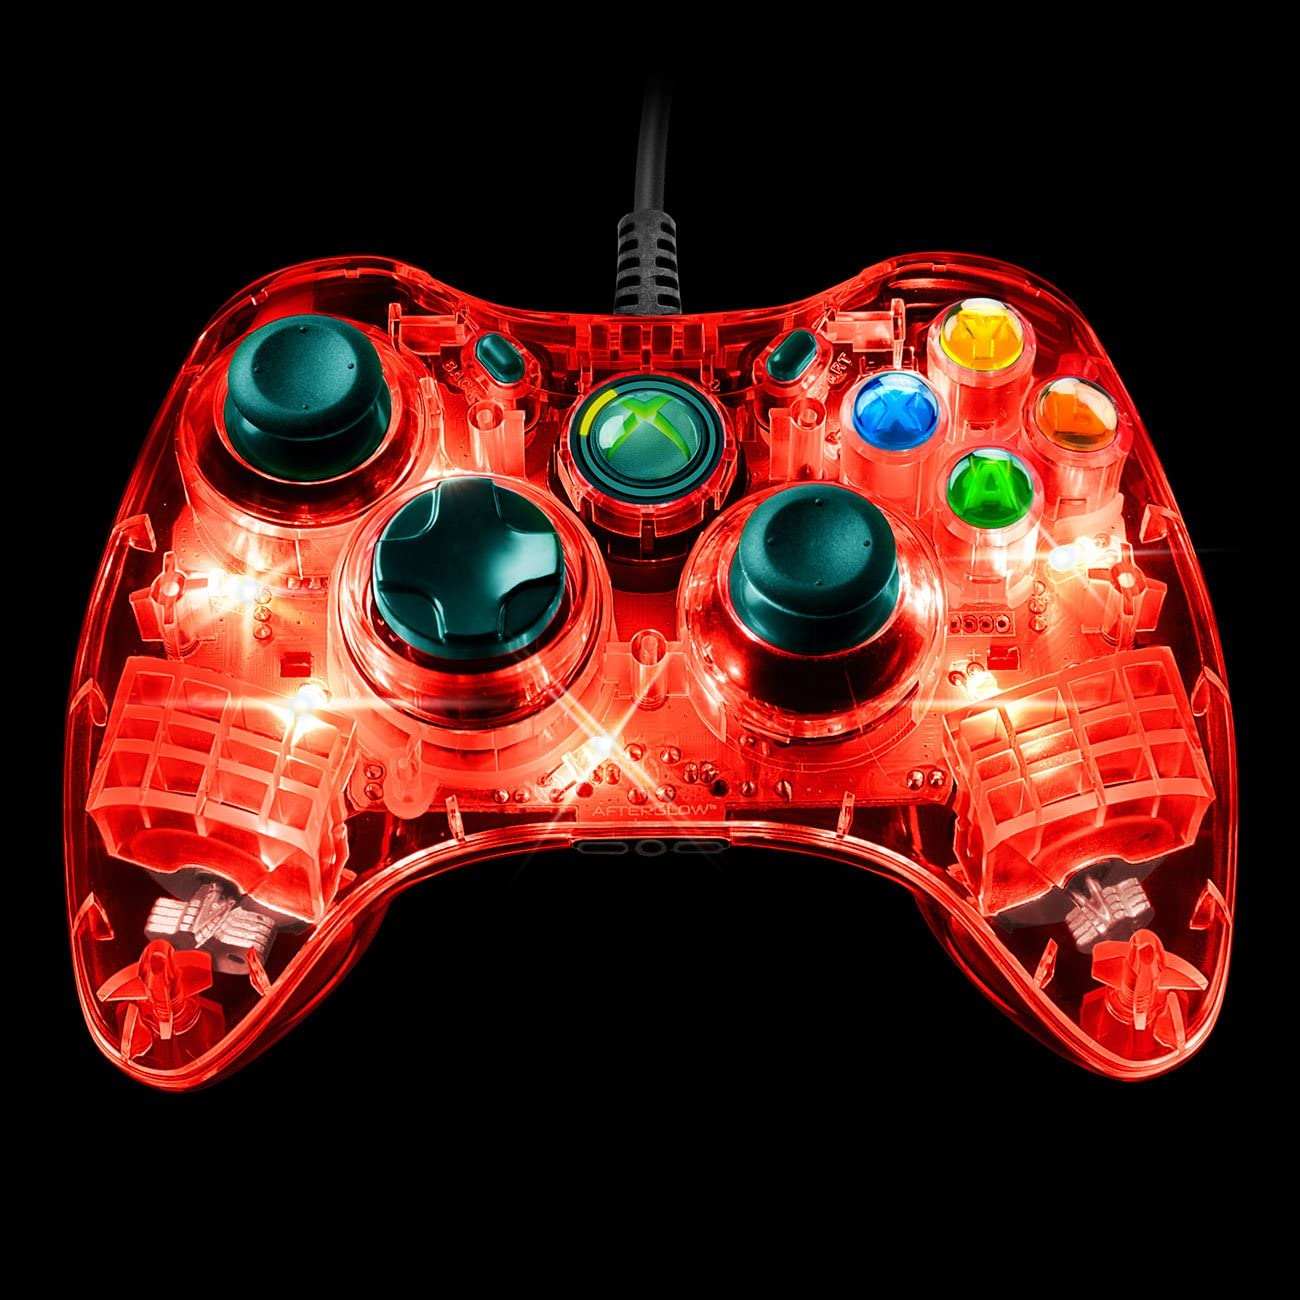 Amazon.com: Afterglow Wired Controller for Xbox 360 - Red: Video Games